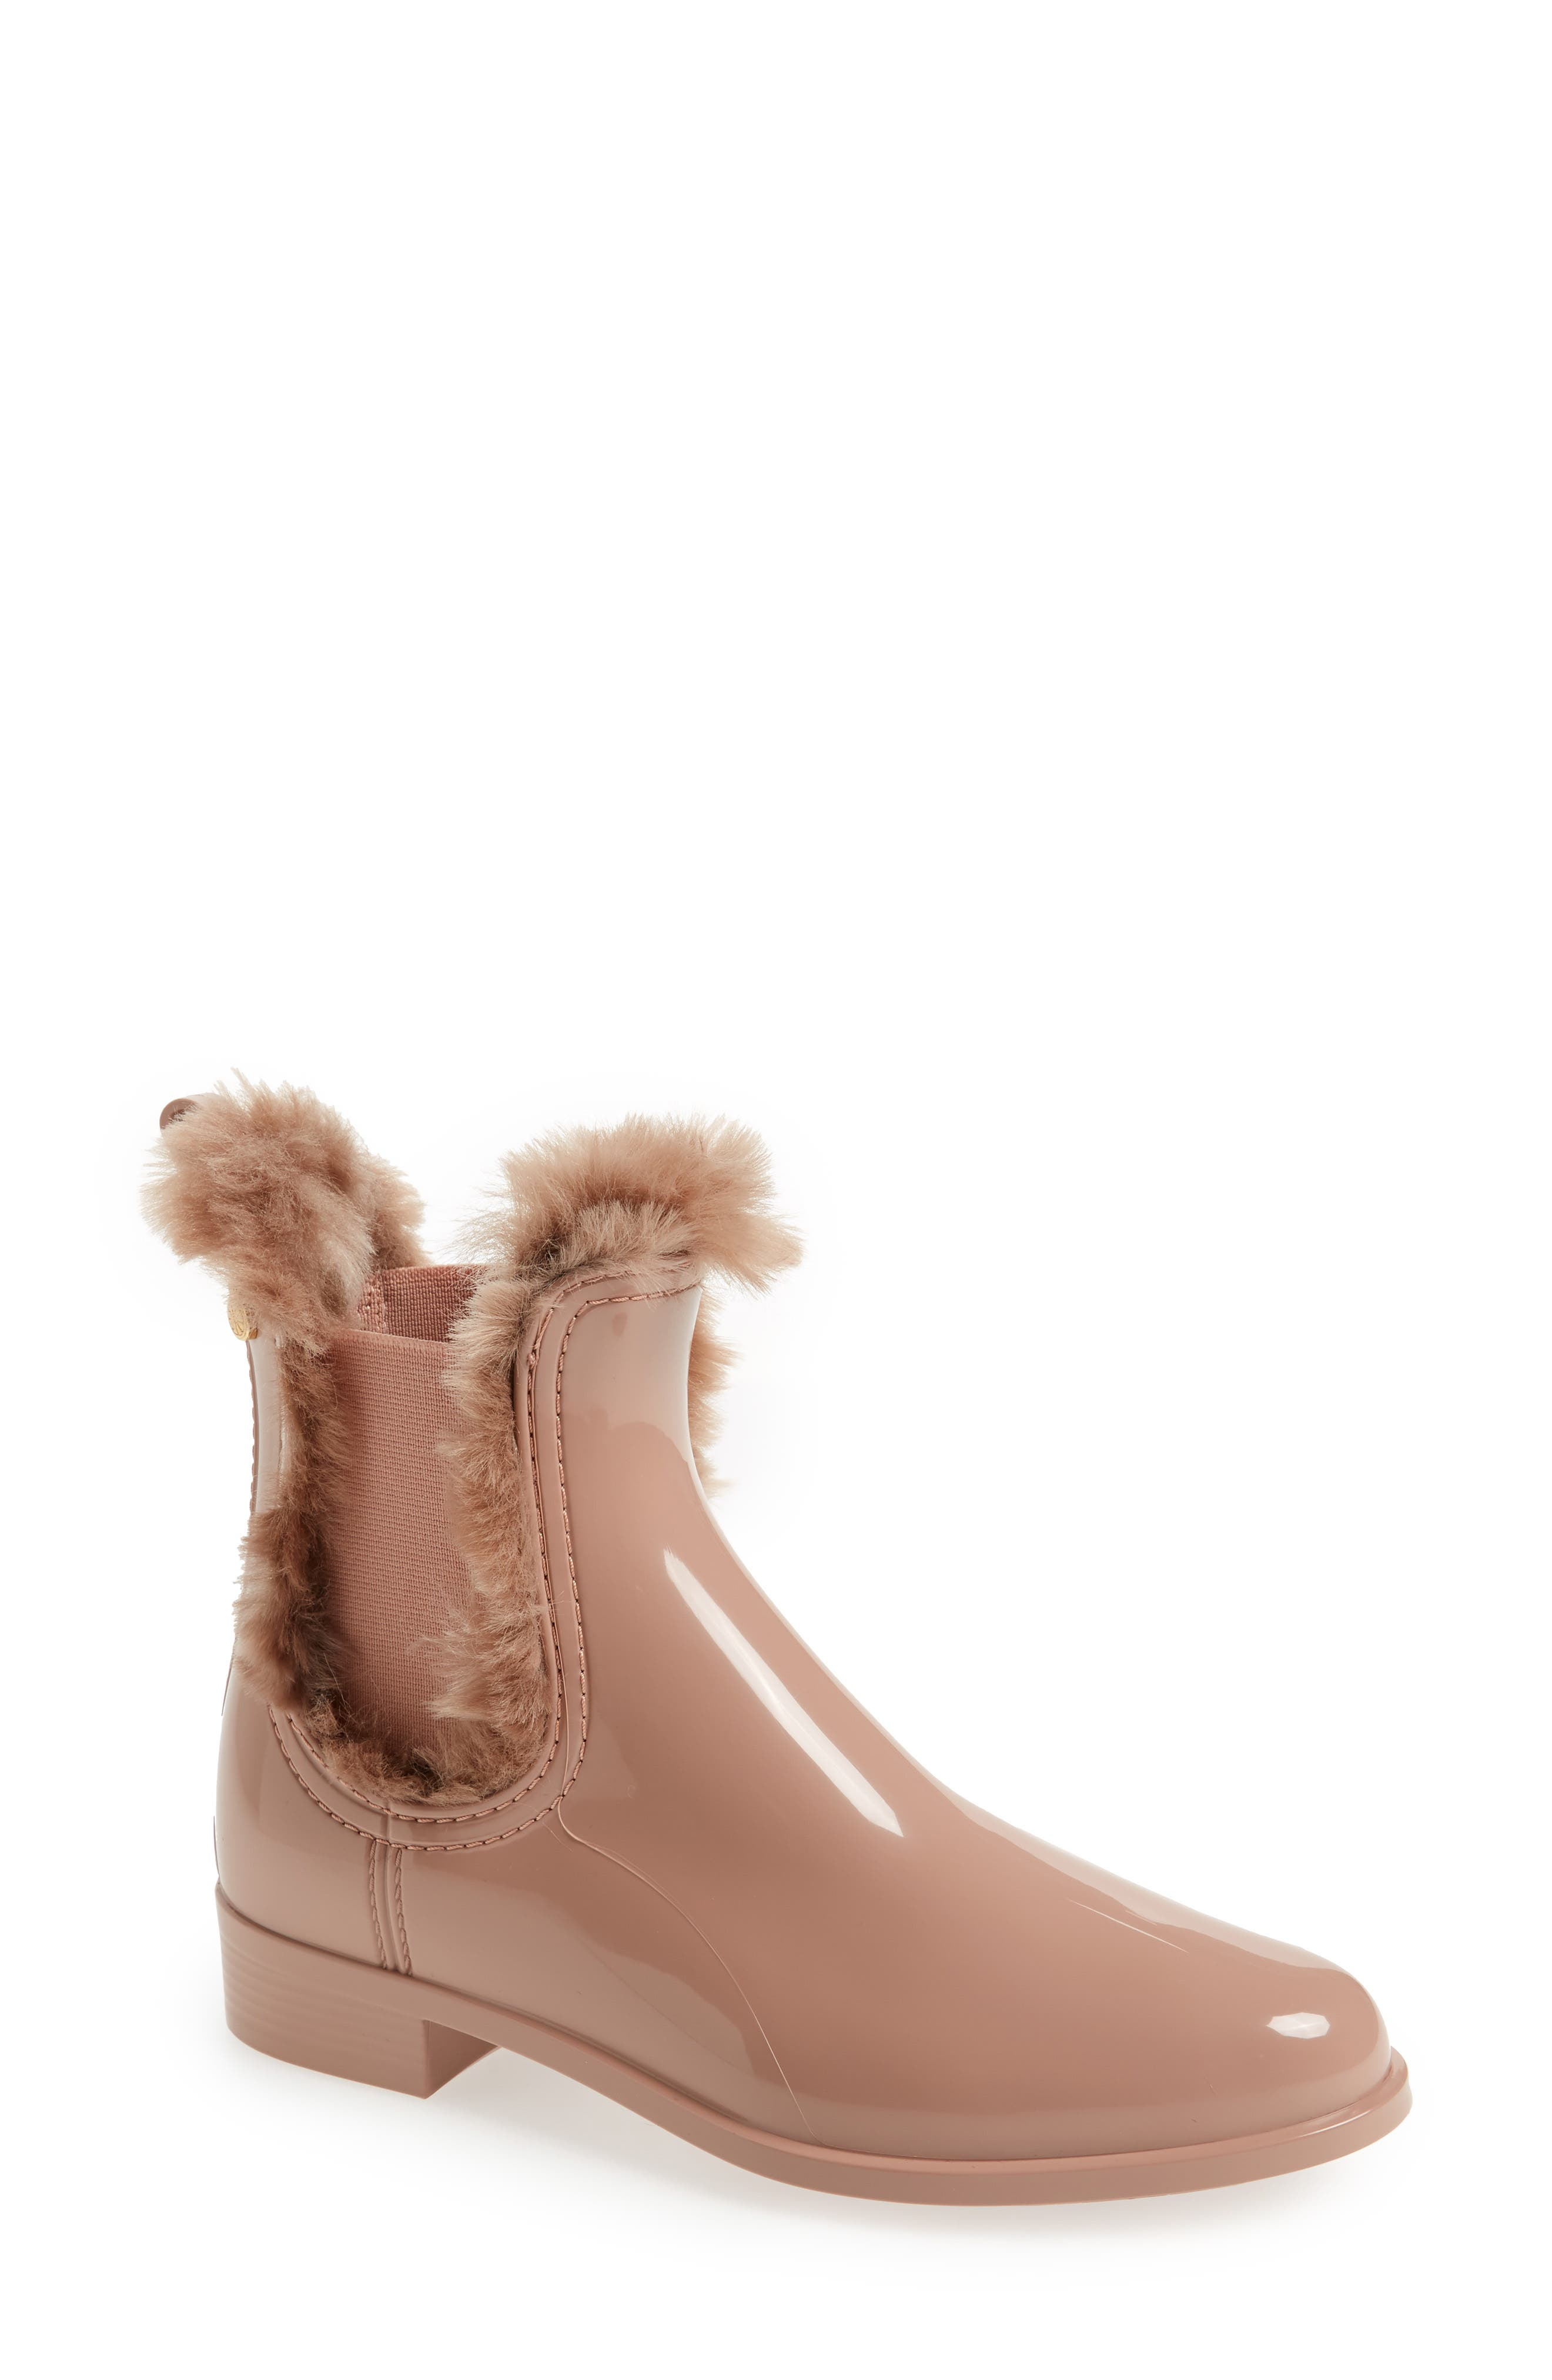 Womens Boots Fashionable Style 21053692 Colors Of California Nylon Canvas Faux Fur